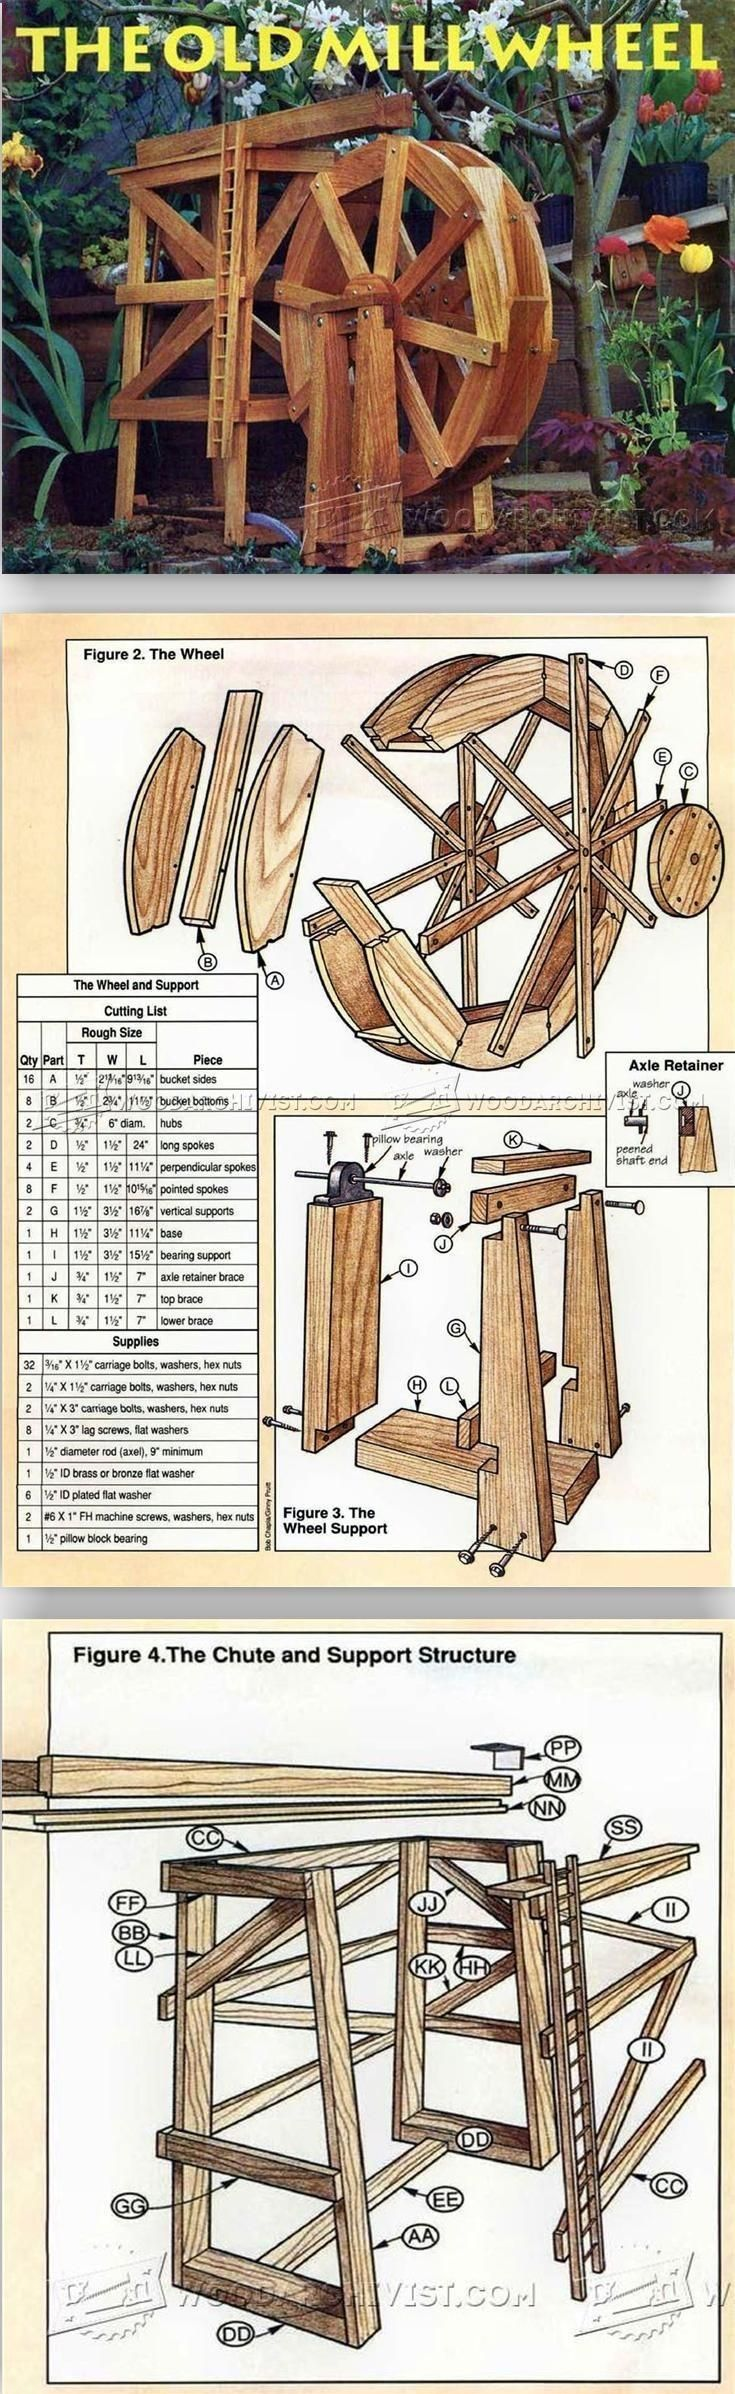 Teds Wood Working - The Old Millwheel - Outdoor Plans and Projects   WoodArchivist.com - Get A Lifetime Of Project Ideas & Inspiration!